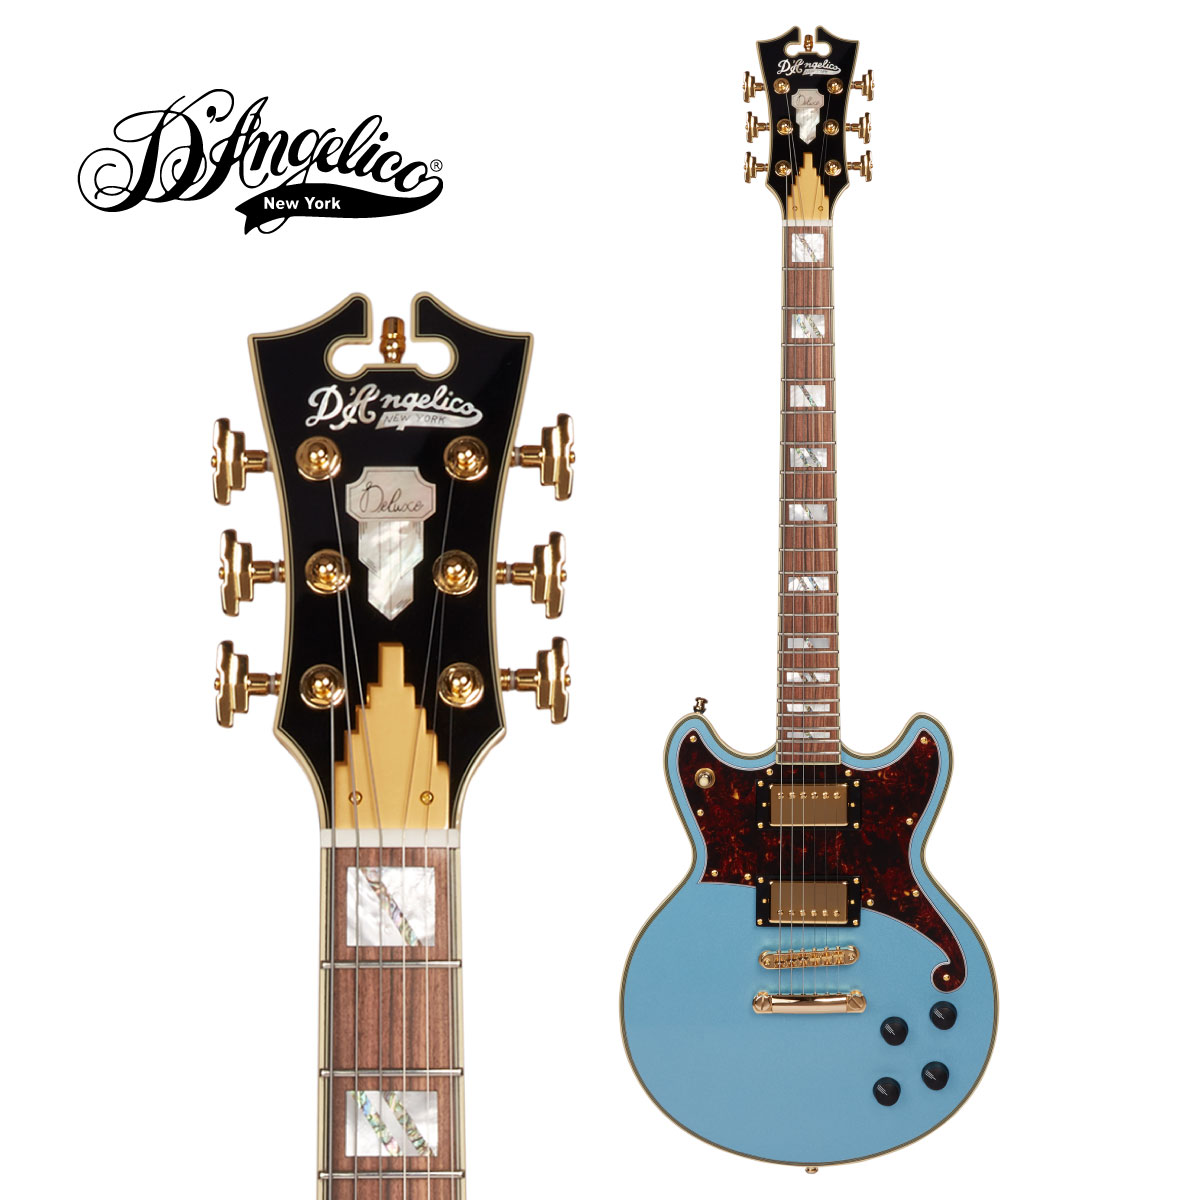 D'Angelico ~Deluxe -Steel Deluxe Brighton Guitar,エレキギター] Blue-[ディアンジェリコ][ブルー,青]Electric Series~